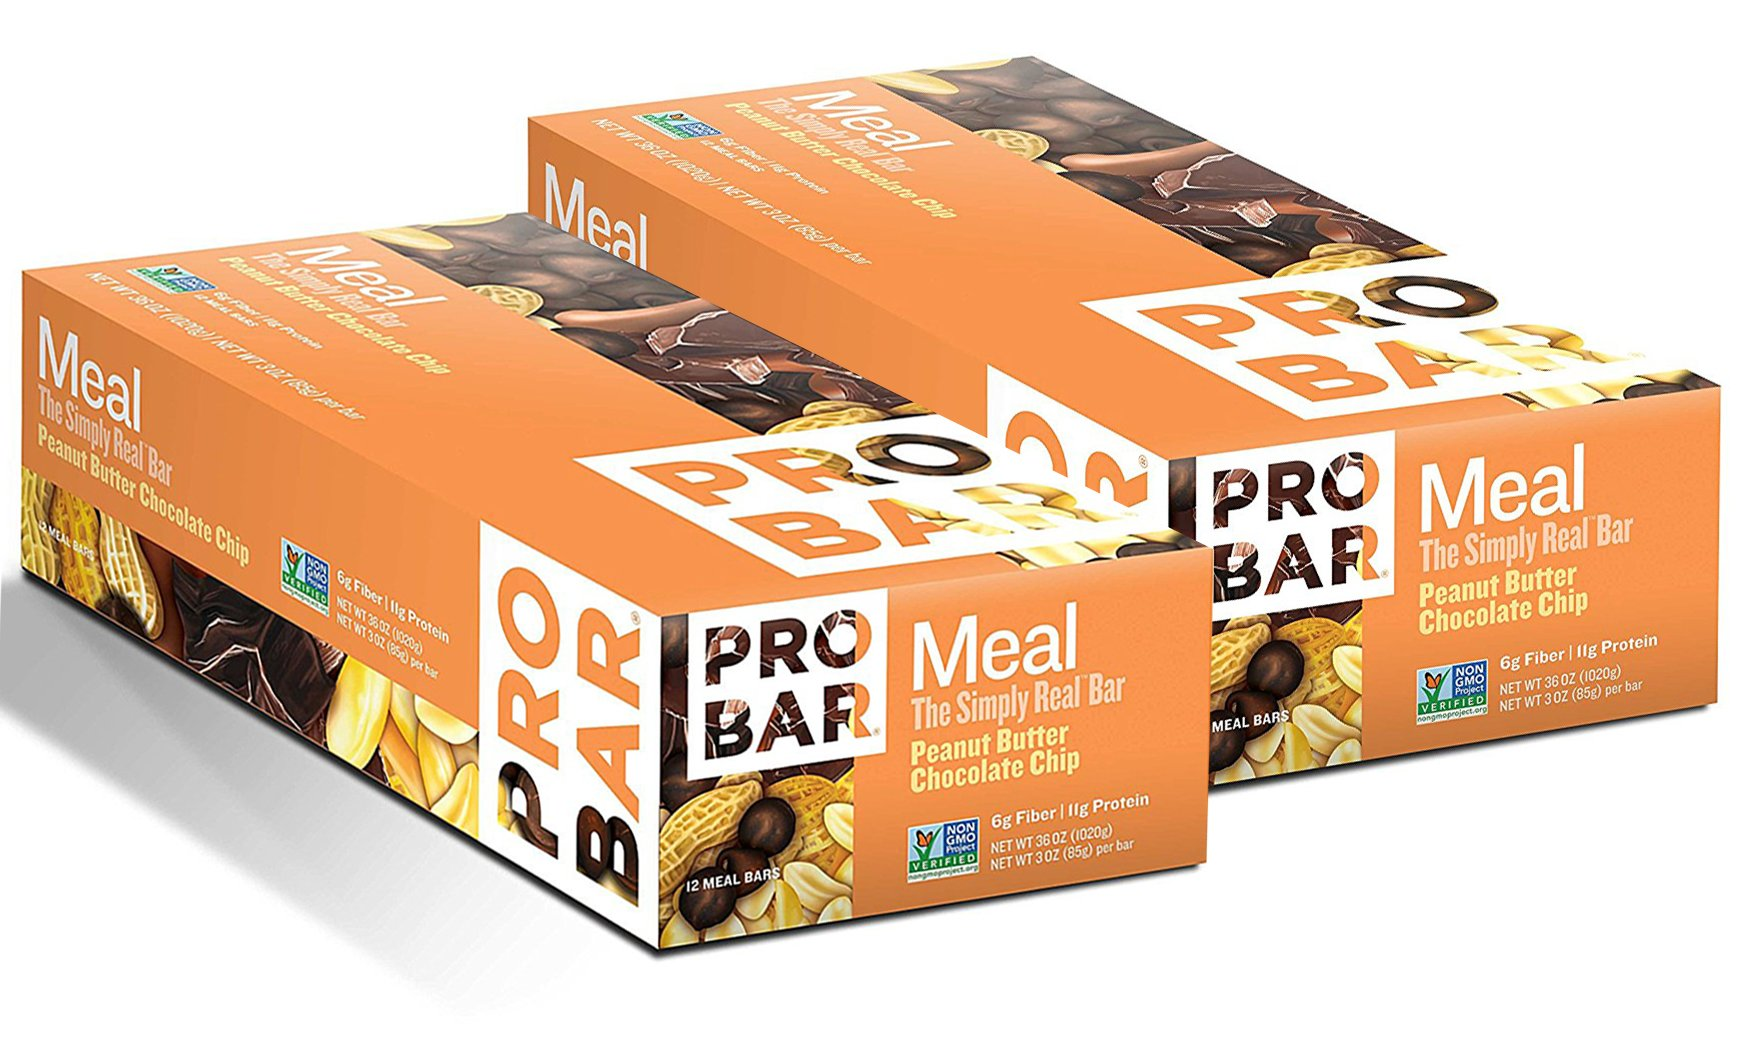 ProBar Meal Bar- Peanut Butter Chocolate Chip 12 count (2 Pack)